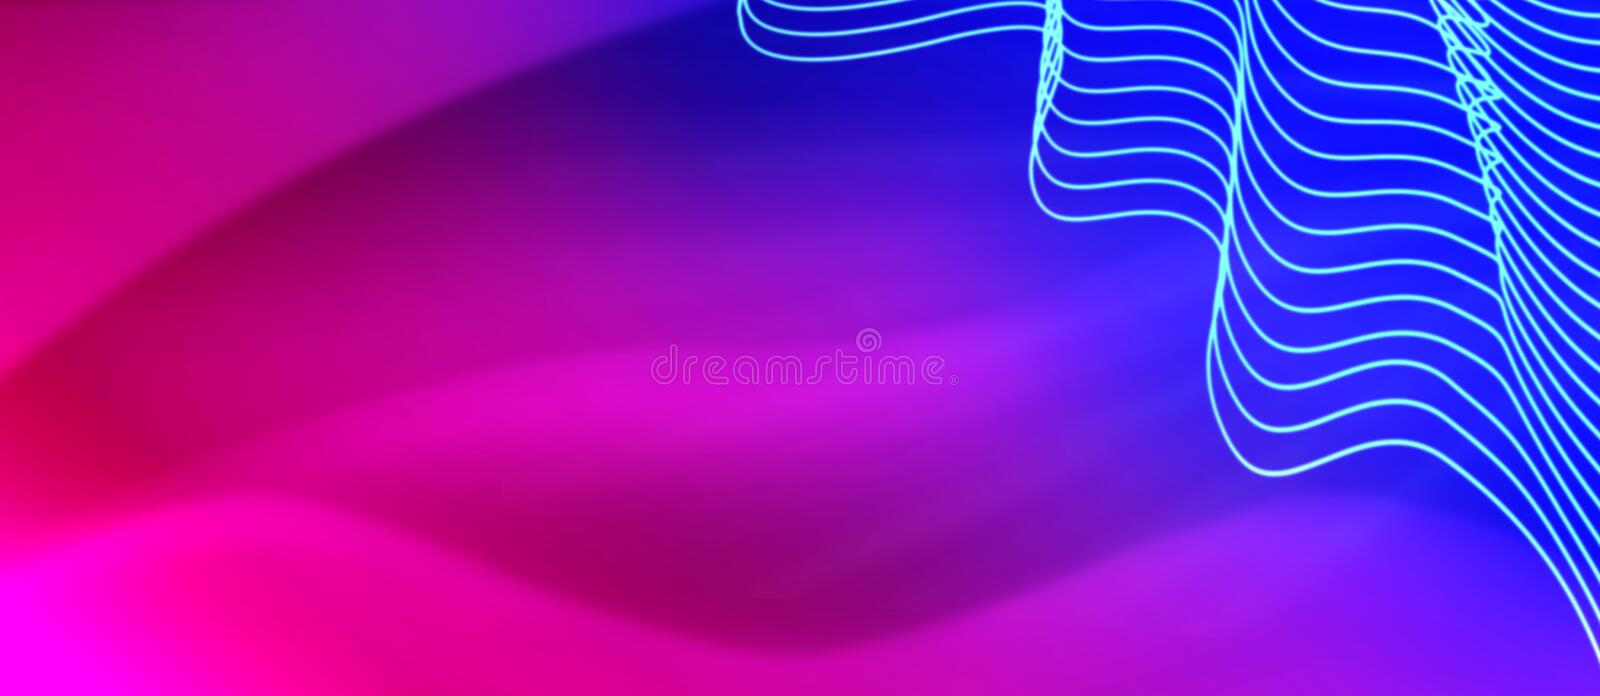 Abstract Curves in Blurred Blue, Pink, Purple and Red Background stock photography